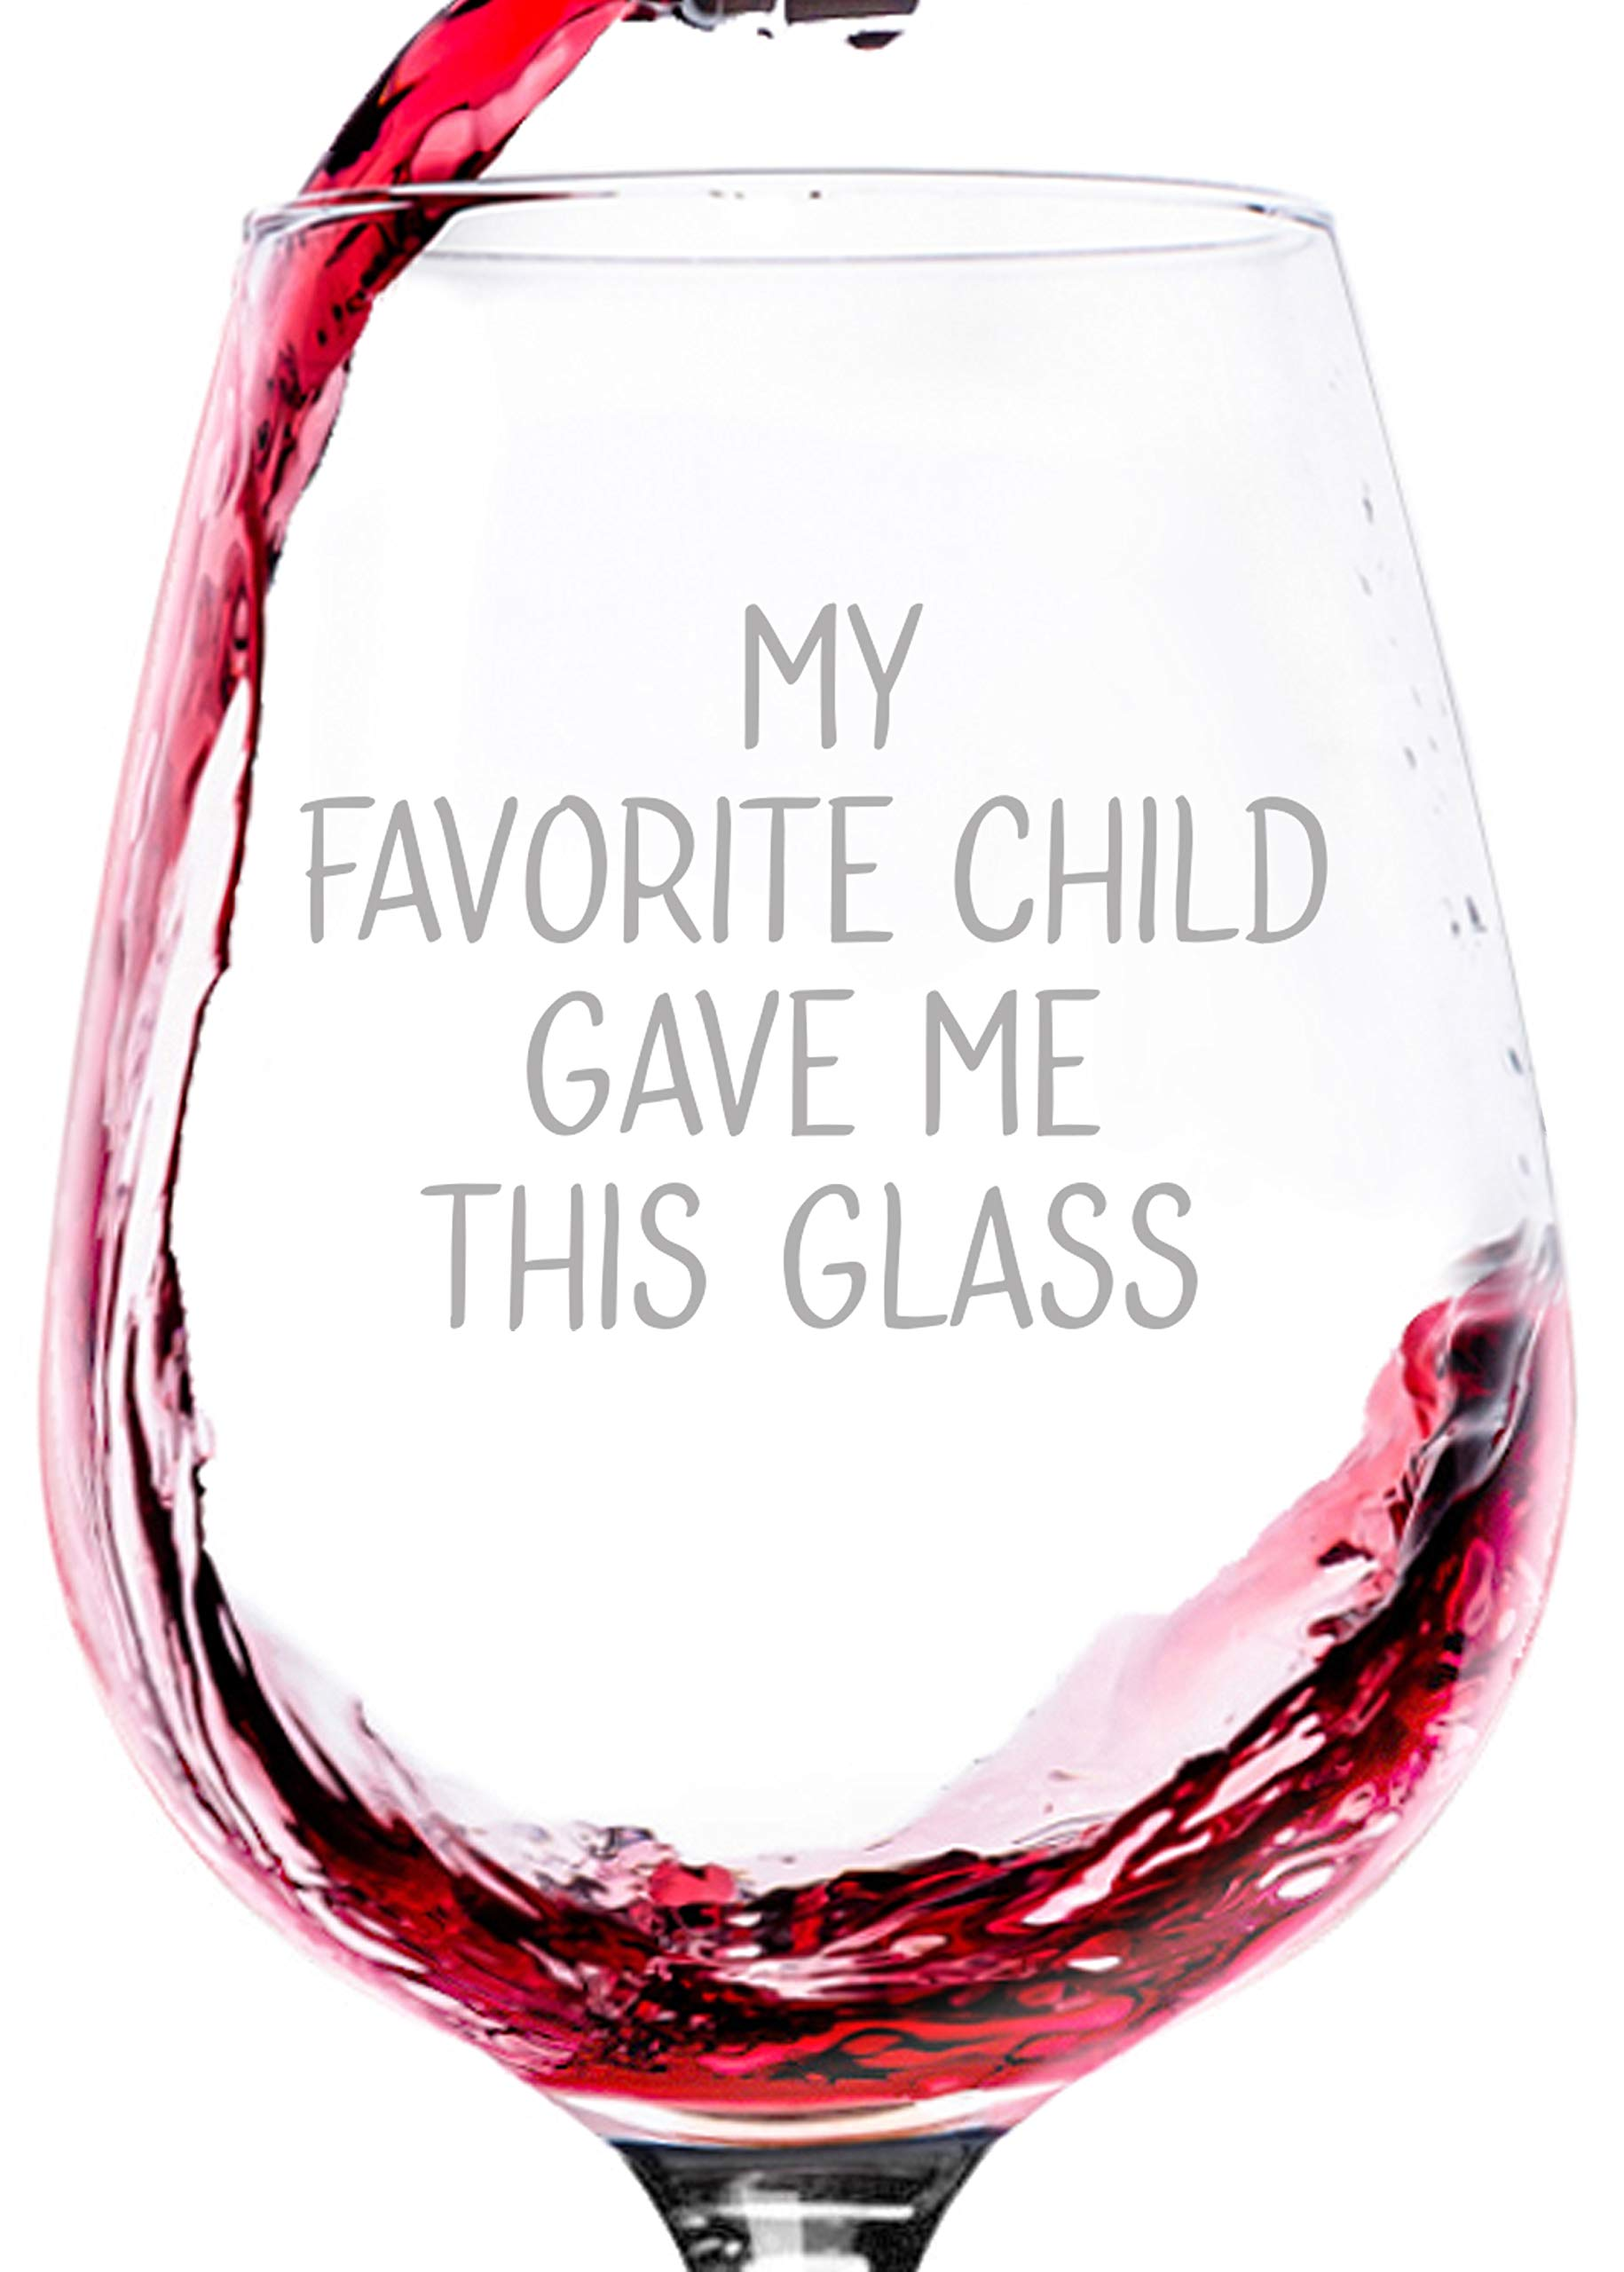 My Favorite Child Gave Me This Funny Wine Glass - Best Dad & Mom Gifts - Gag Father's Day Present Idea From Daughter, Son, Kids - Fun Novelty Birthday Gift For Parents, Men, Women, Him, Her - 13 oz by Wittsy Glassware and Gifts (Image #1)